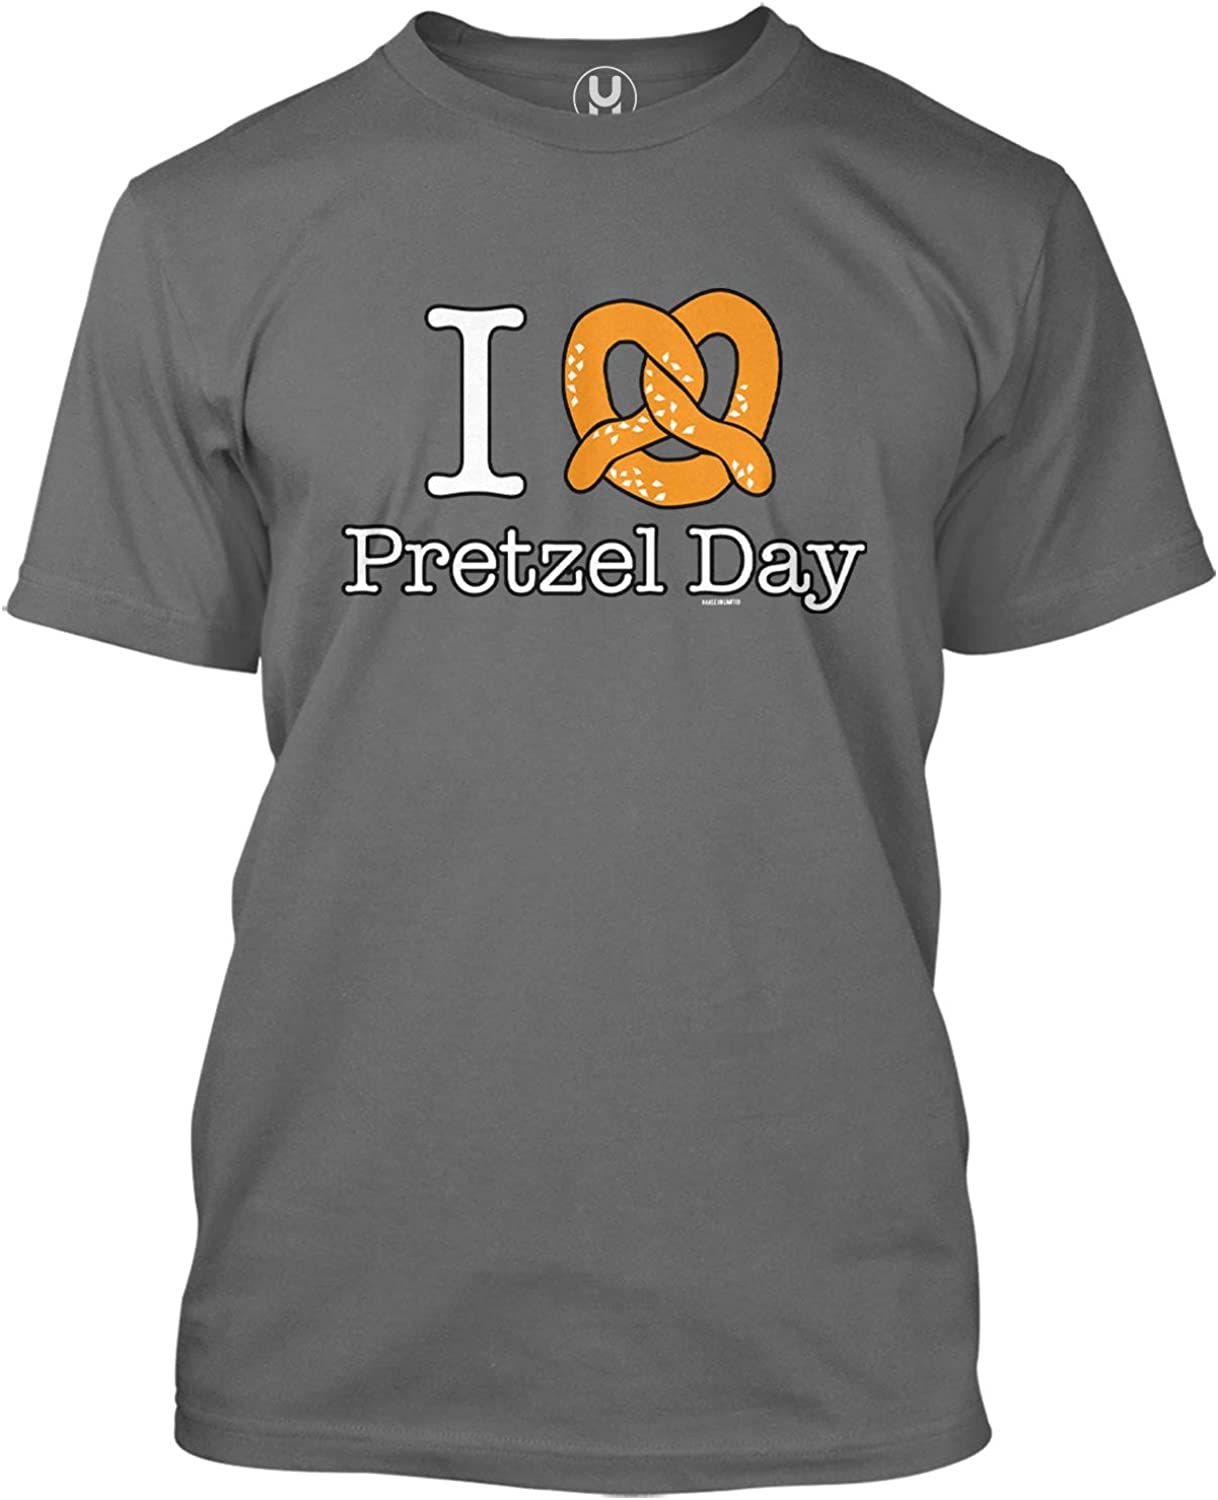 I Love Pretzel Day - Comedy TV Show Parody Men's T-Shirt